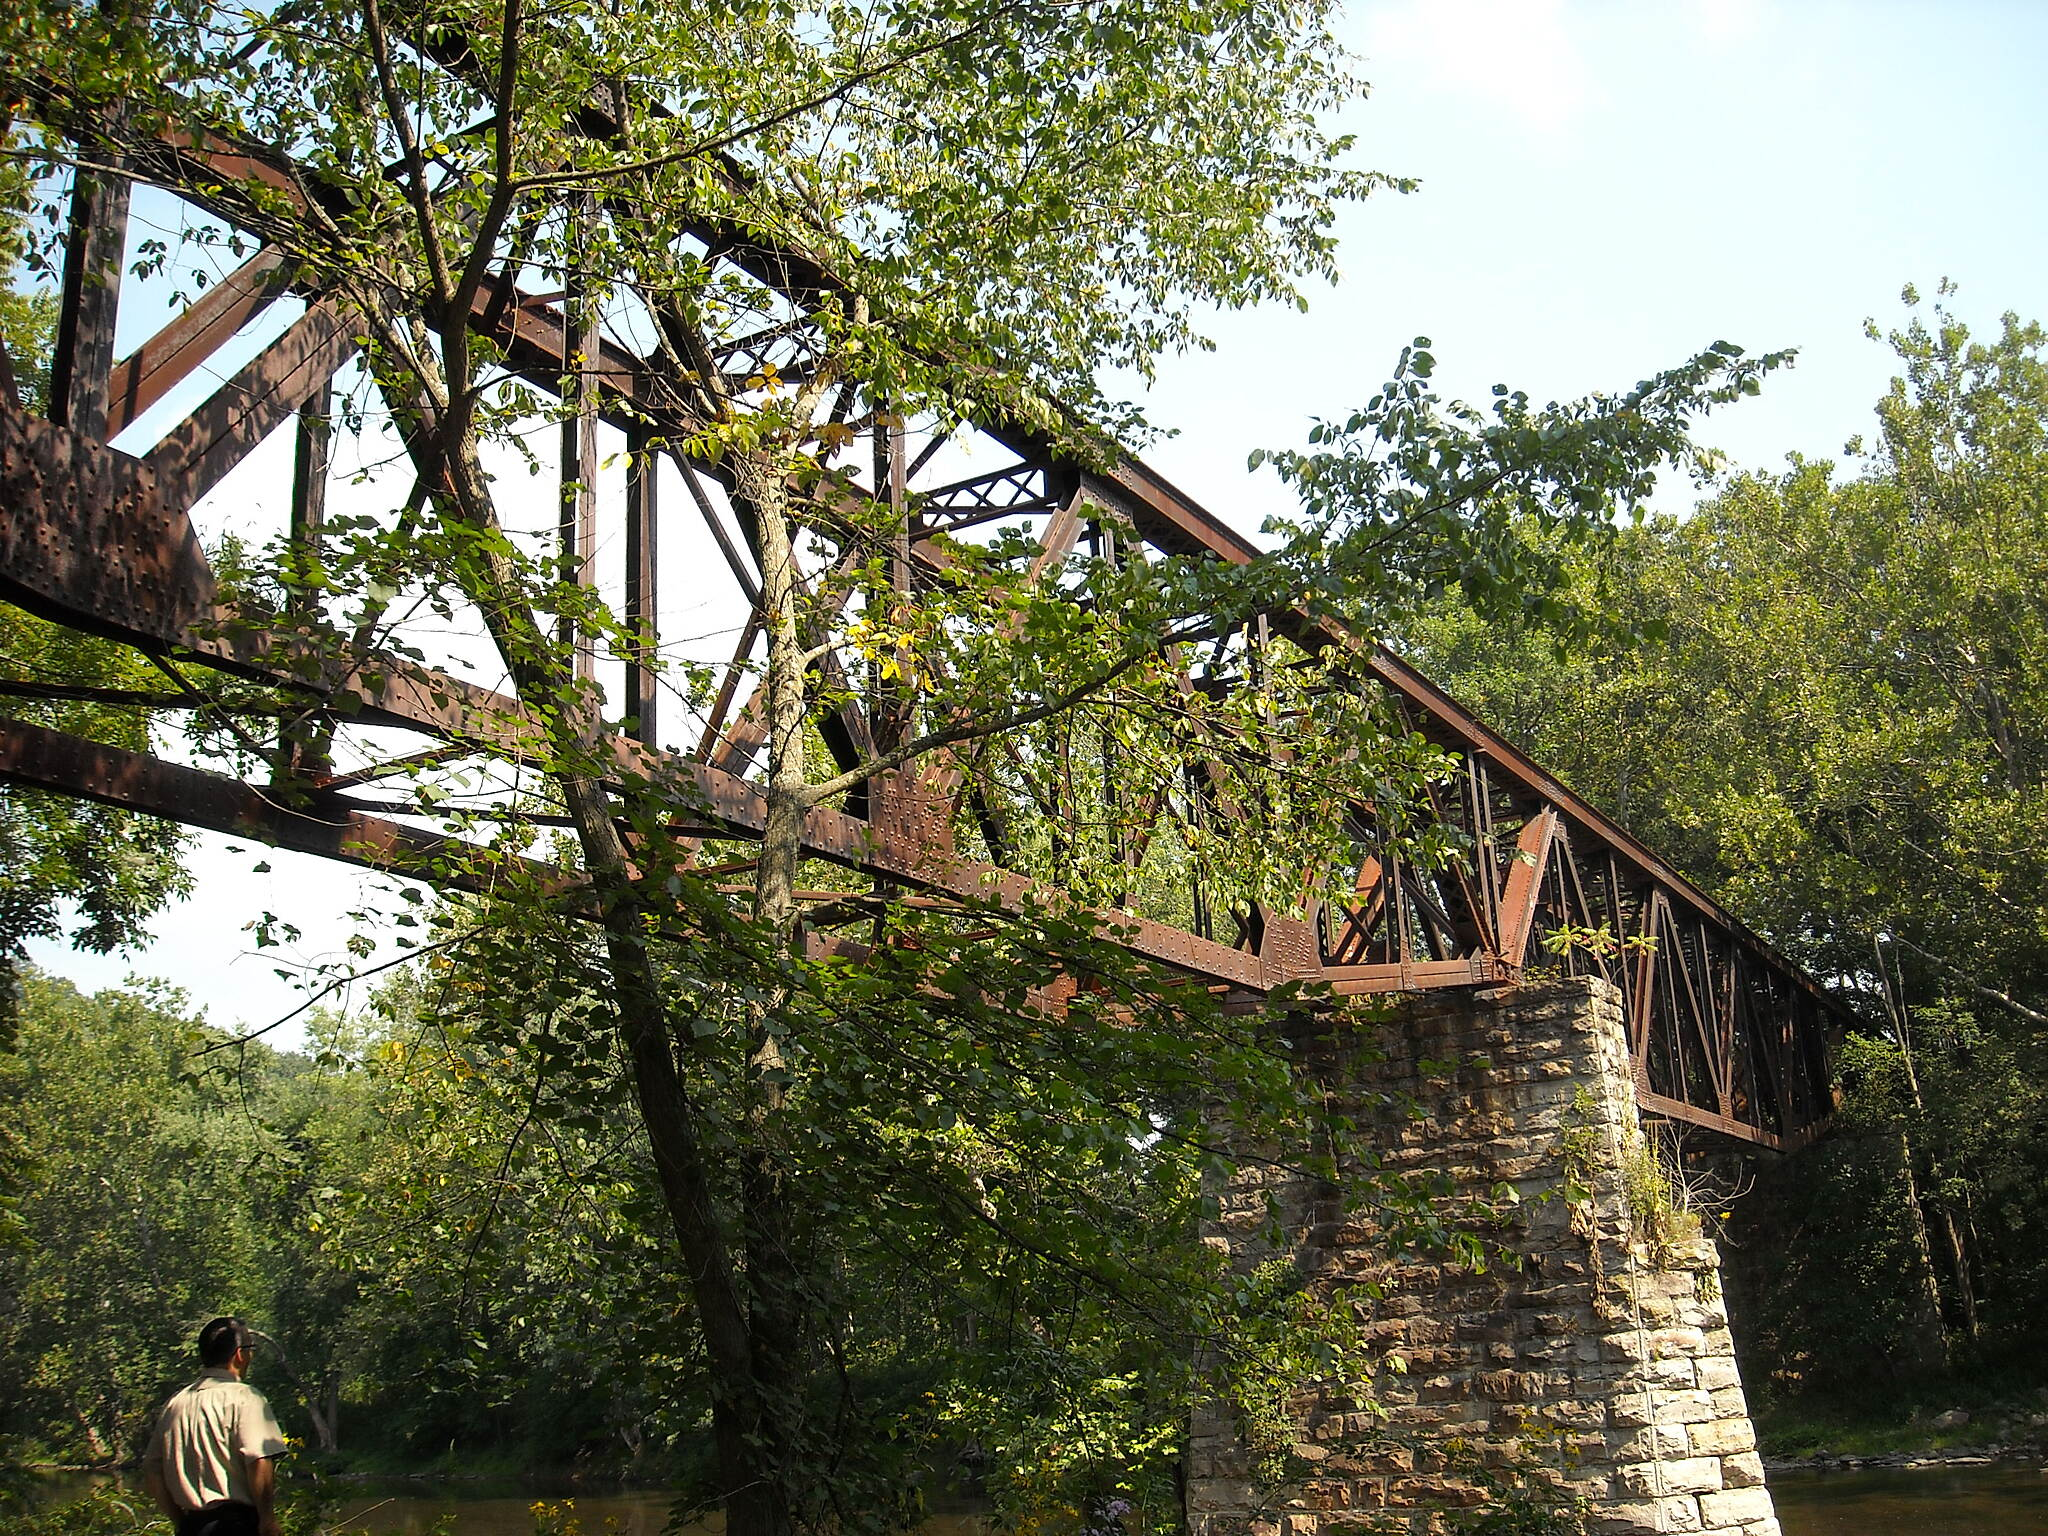 Huntingdon and Broad Top Rail Trail (H&BT Rail Trail) Trestle Bridge The photo depicts the trestle bridge to be re-decked an opened in 2014.